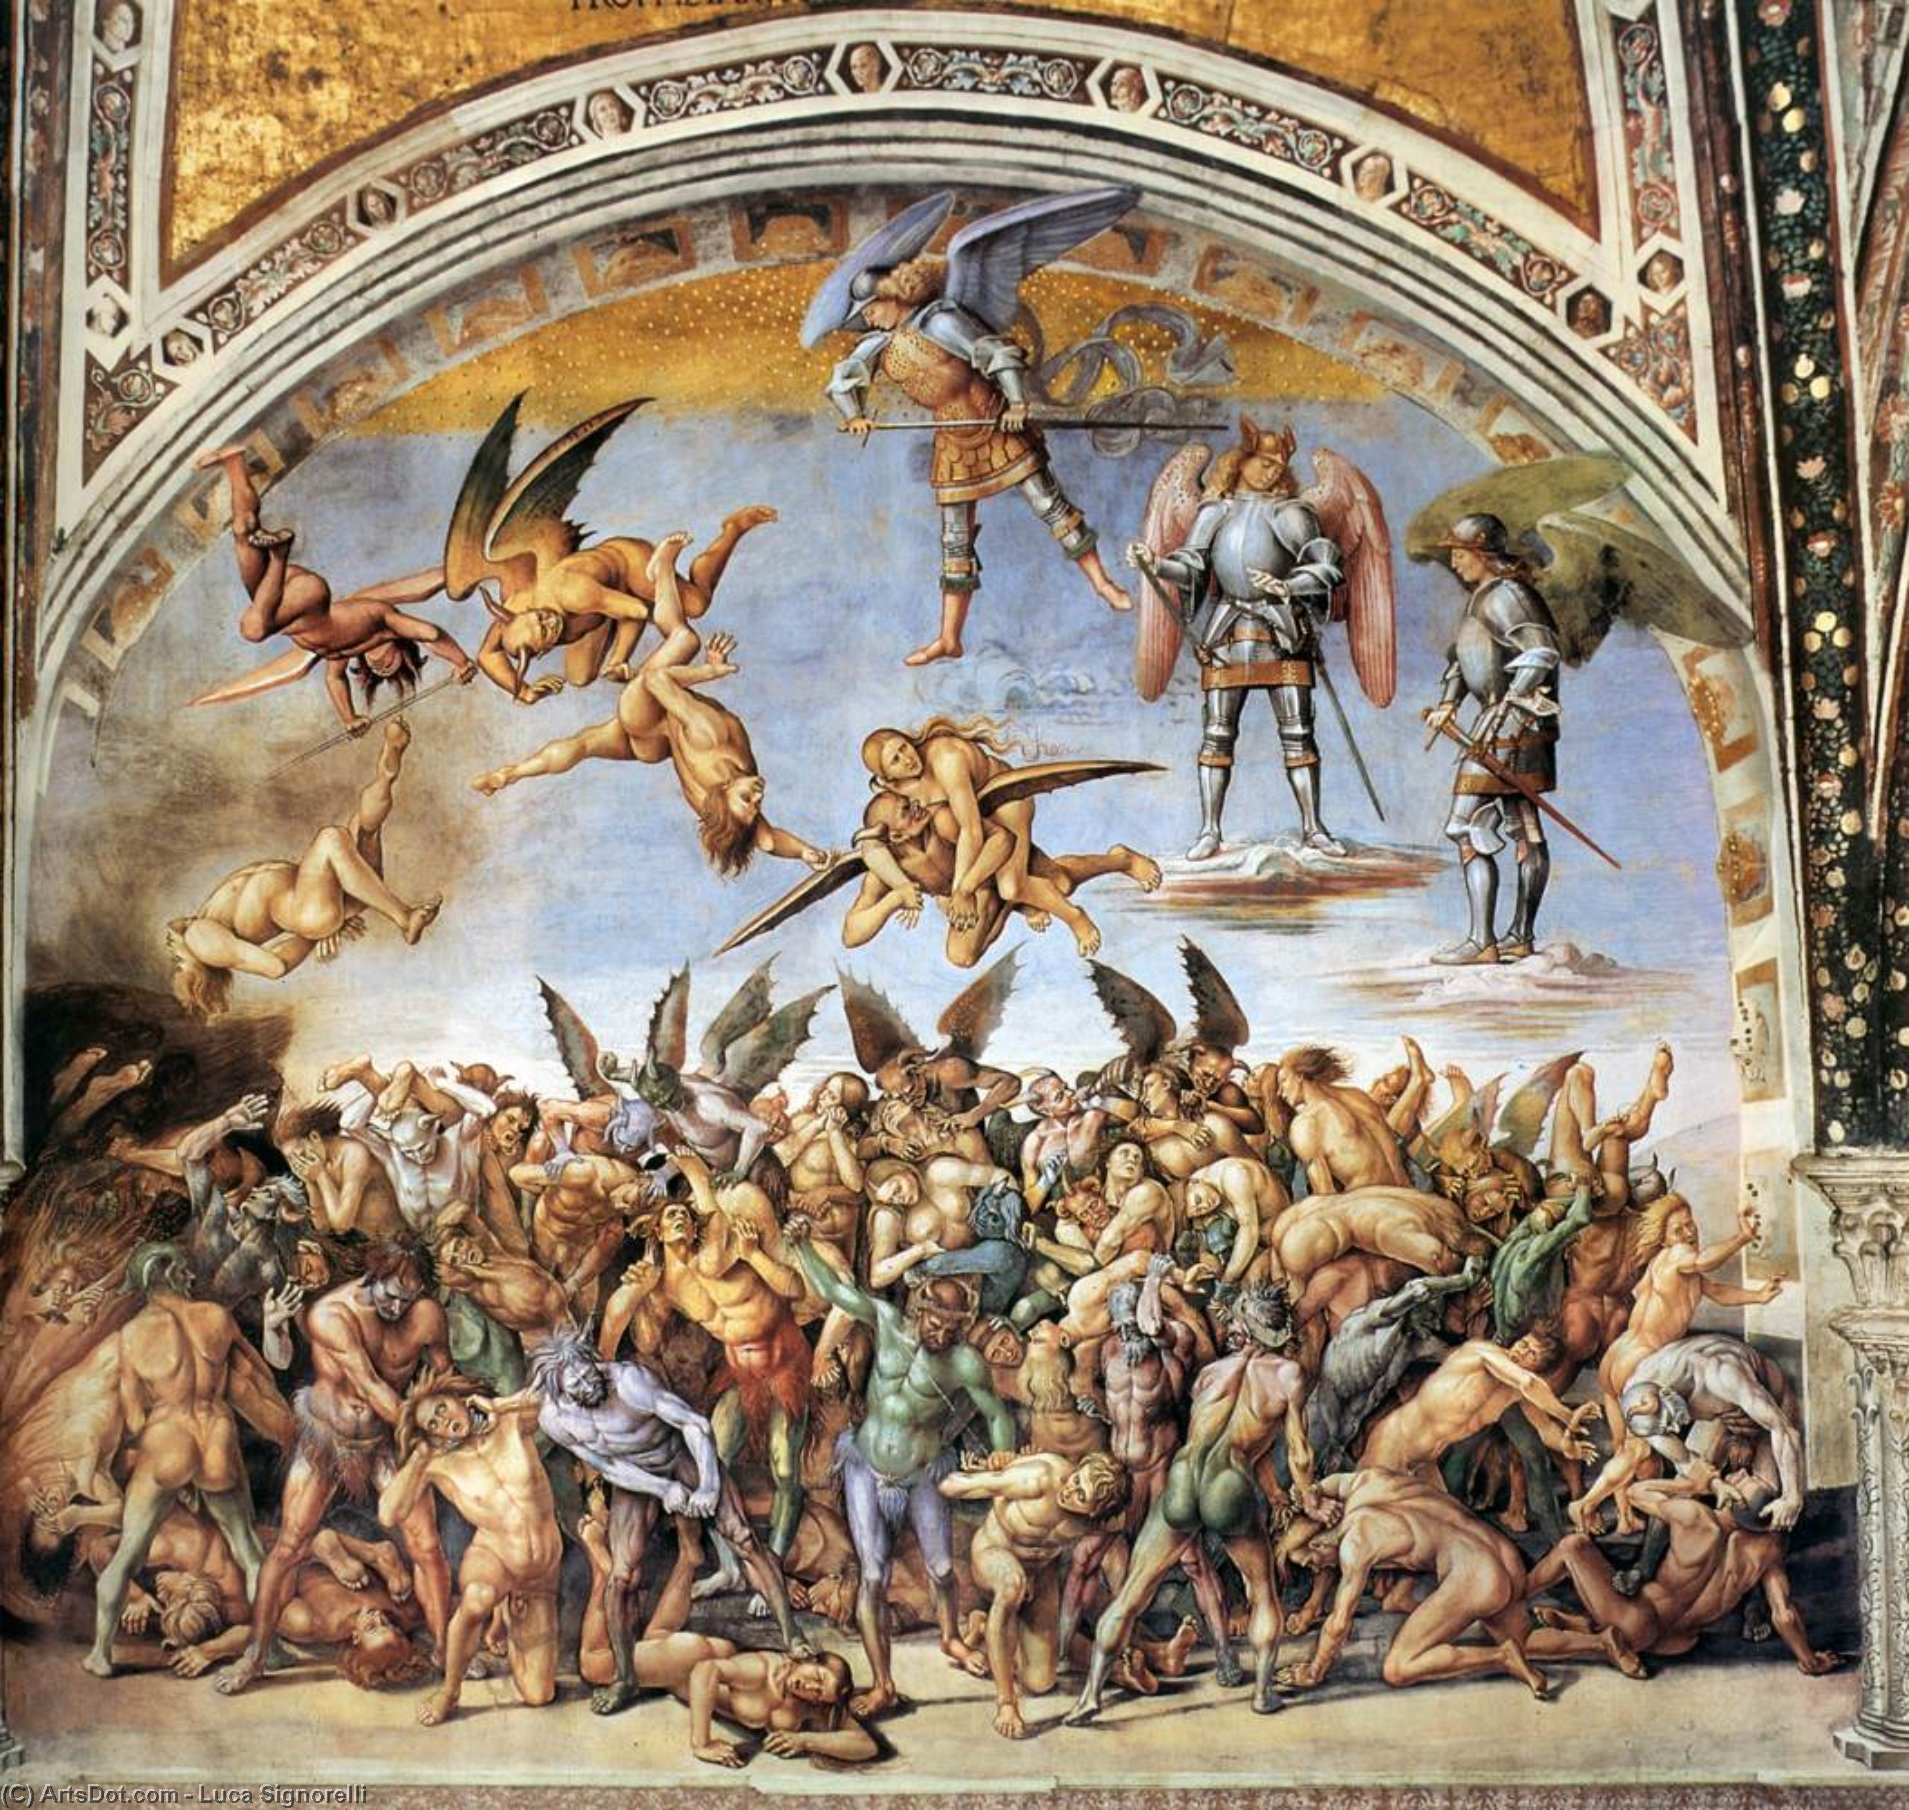 The Hell, Frescoes by Luca Signorelli (1445-1523, Italy)